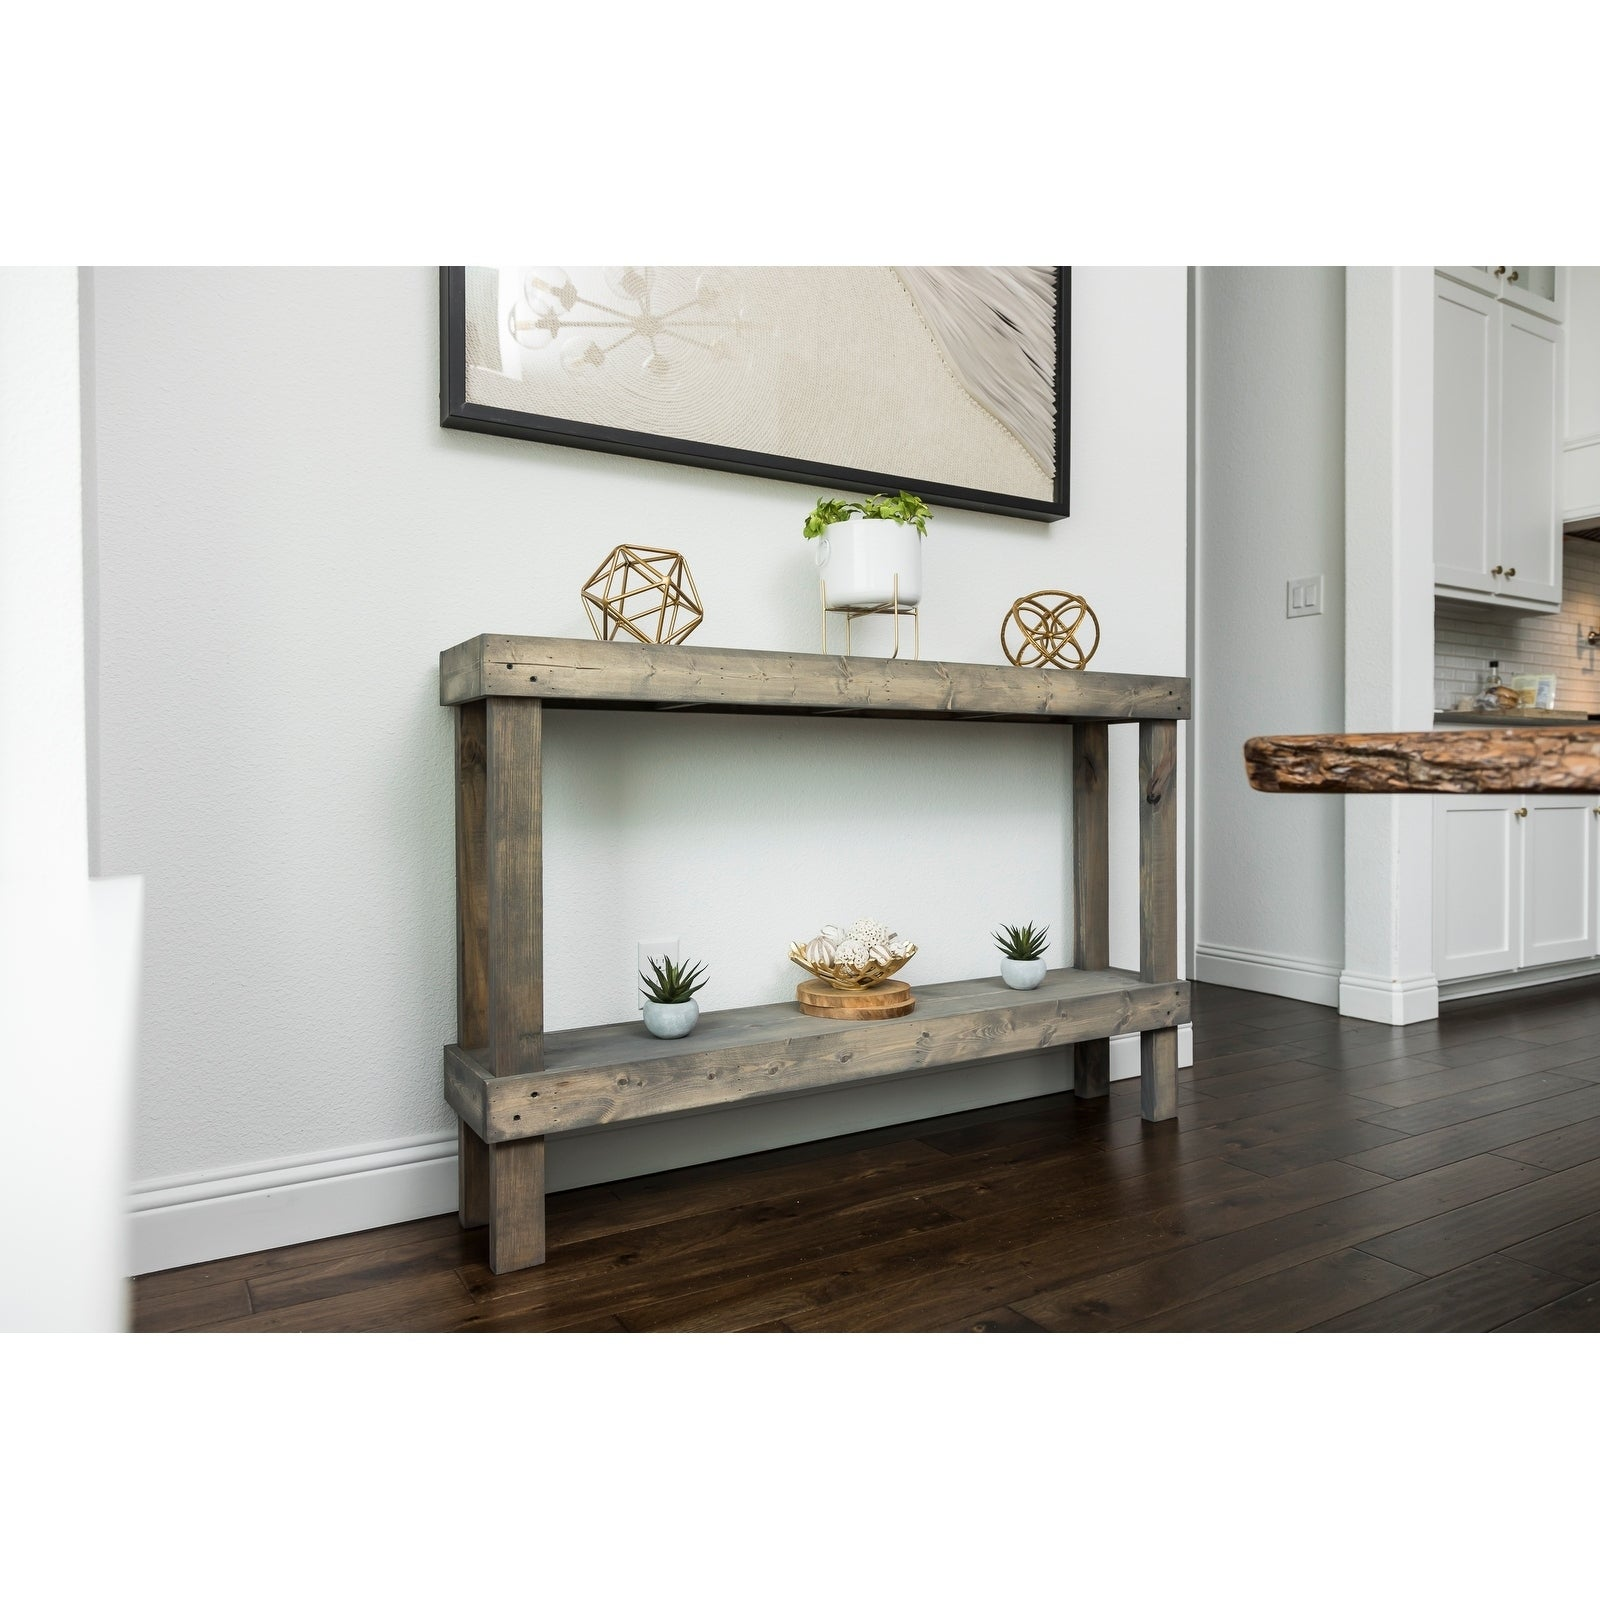 Shop Rustic Luxe Large Wooden Sofa Table By Del Hutson Designs Overstock 27316931 Grey